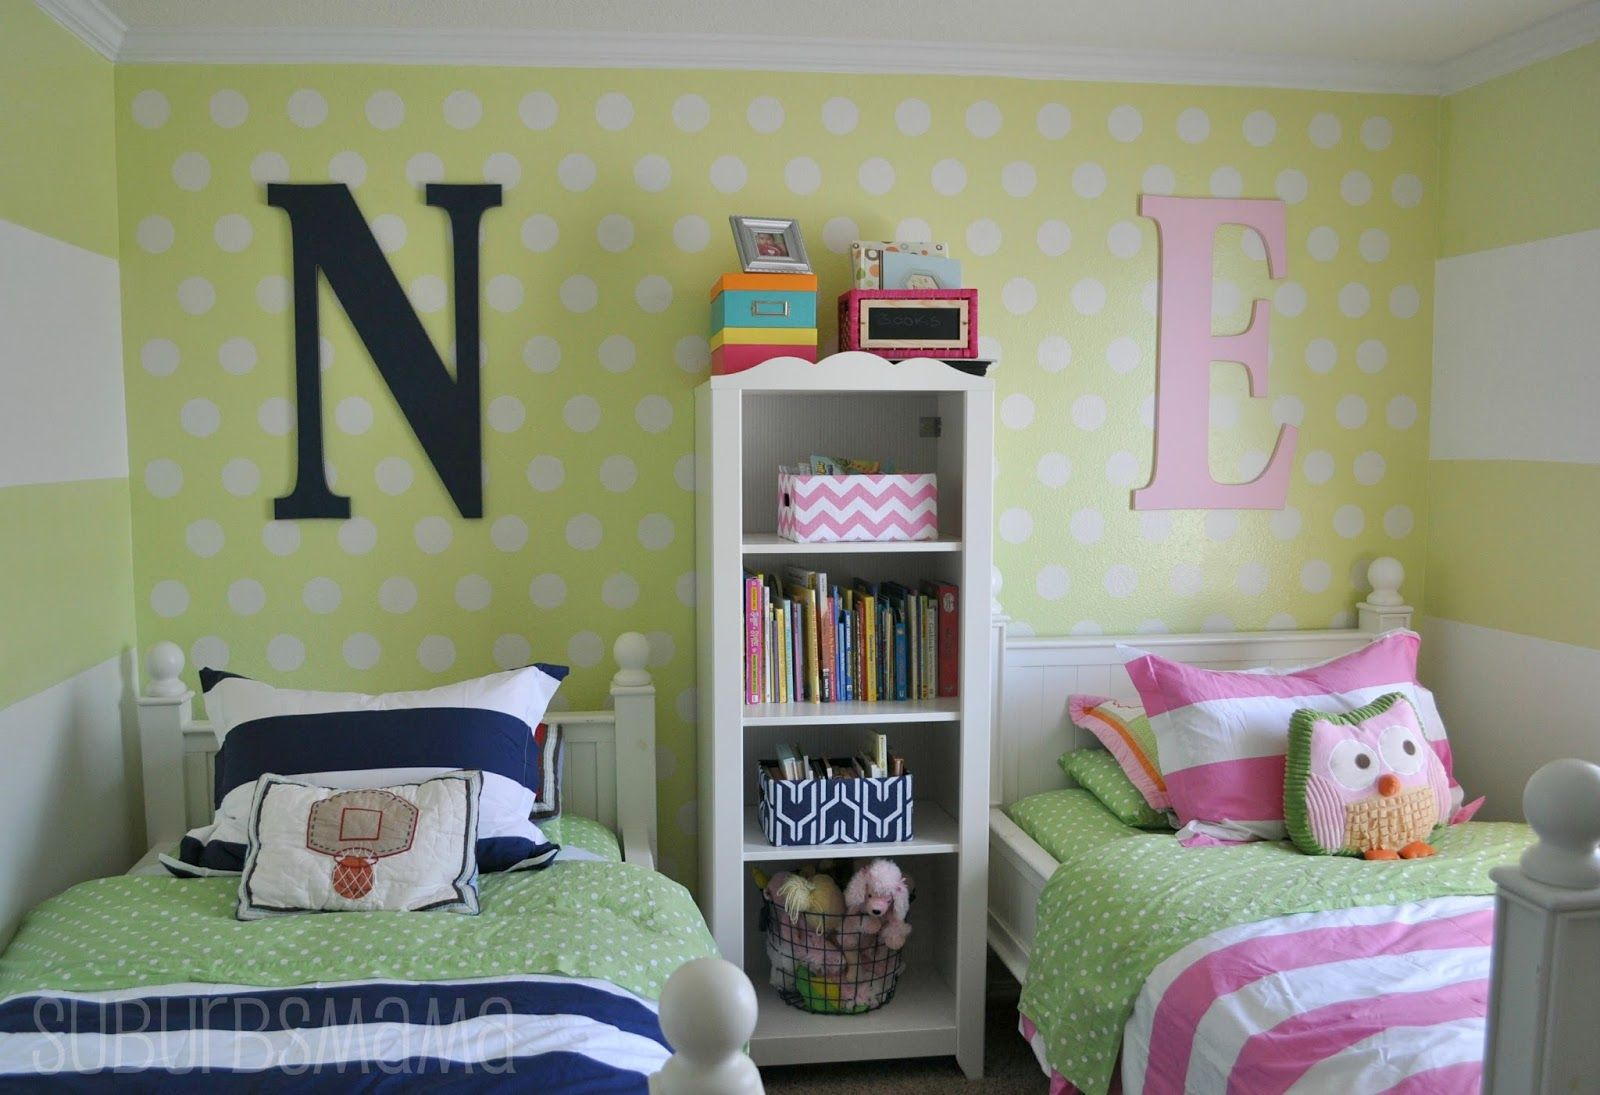 16 Gorgeous Boy Girl Room Ideas Beautiful Boy And Girl Shared Bedroom With Two Single Size Beds Navy And Pink Stripes Pillows Blankets Plus Basketball